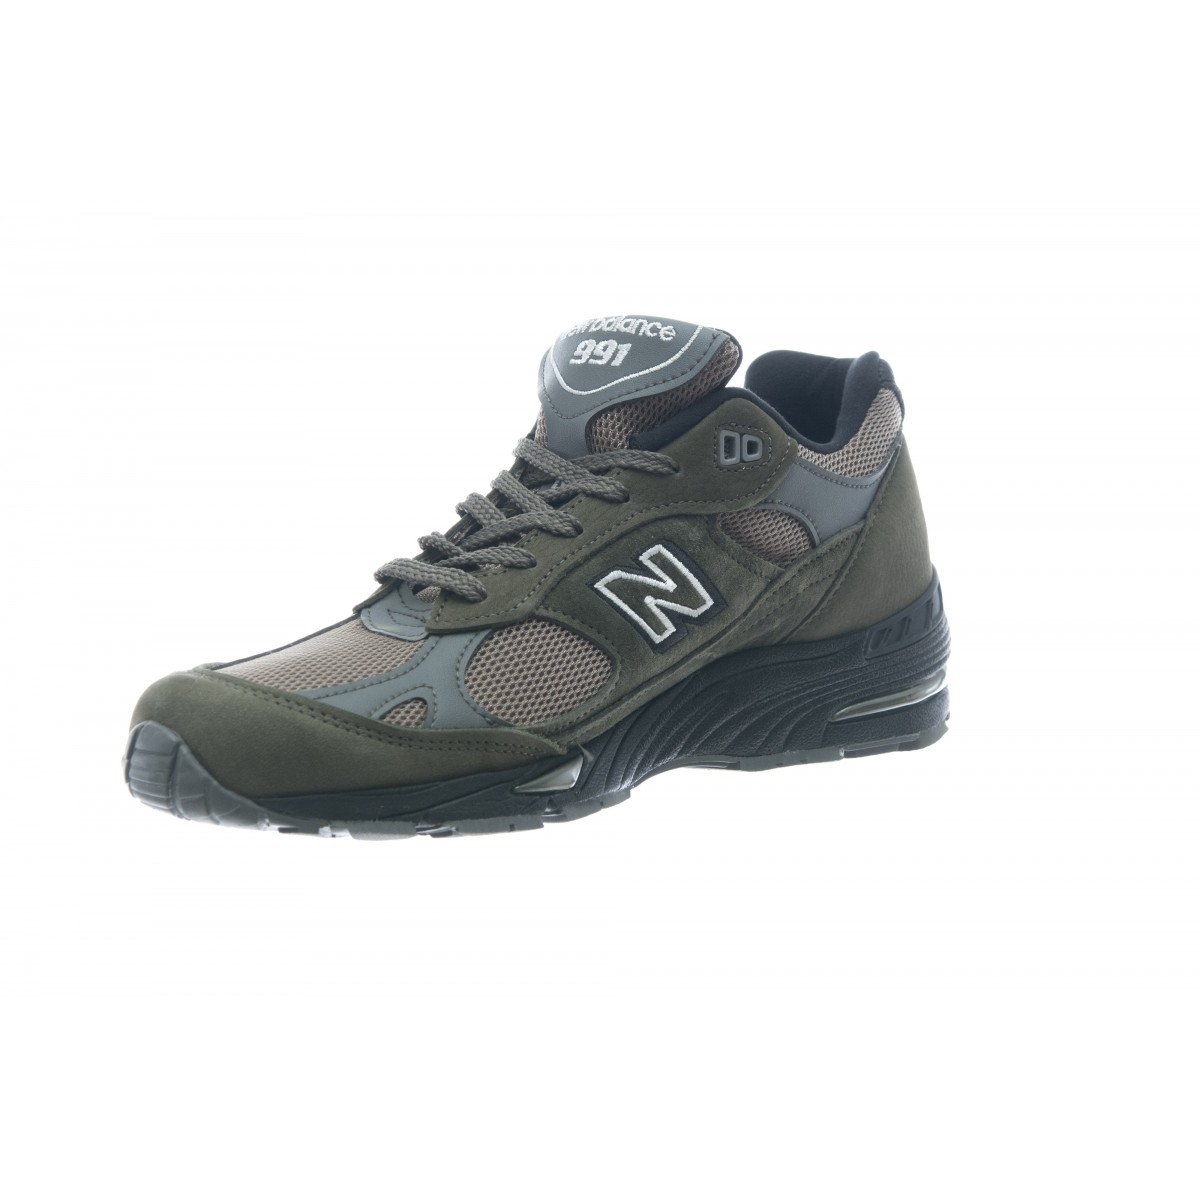 Scarpa - M991 fsd limited edition made in uk